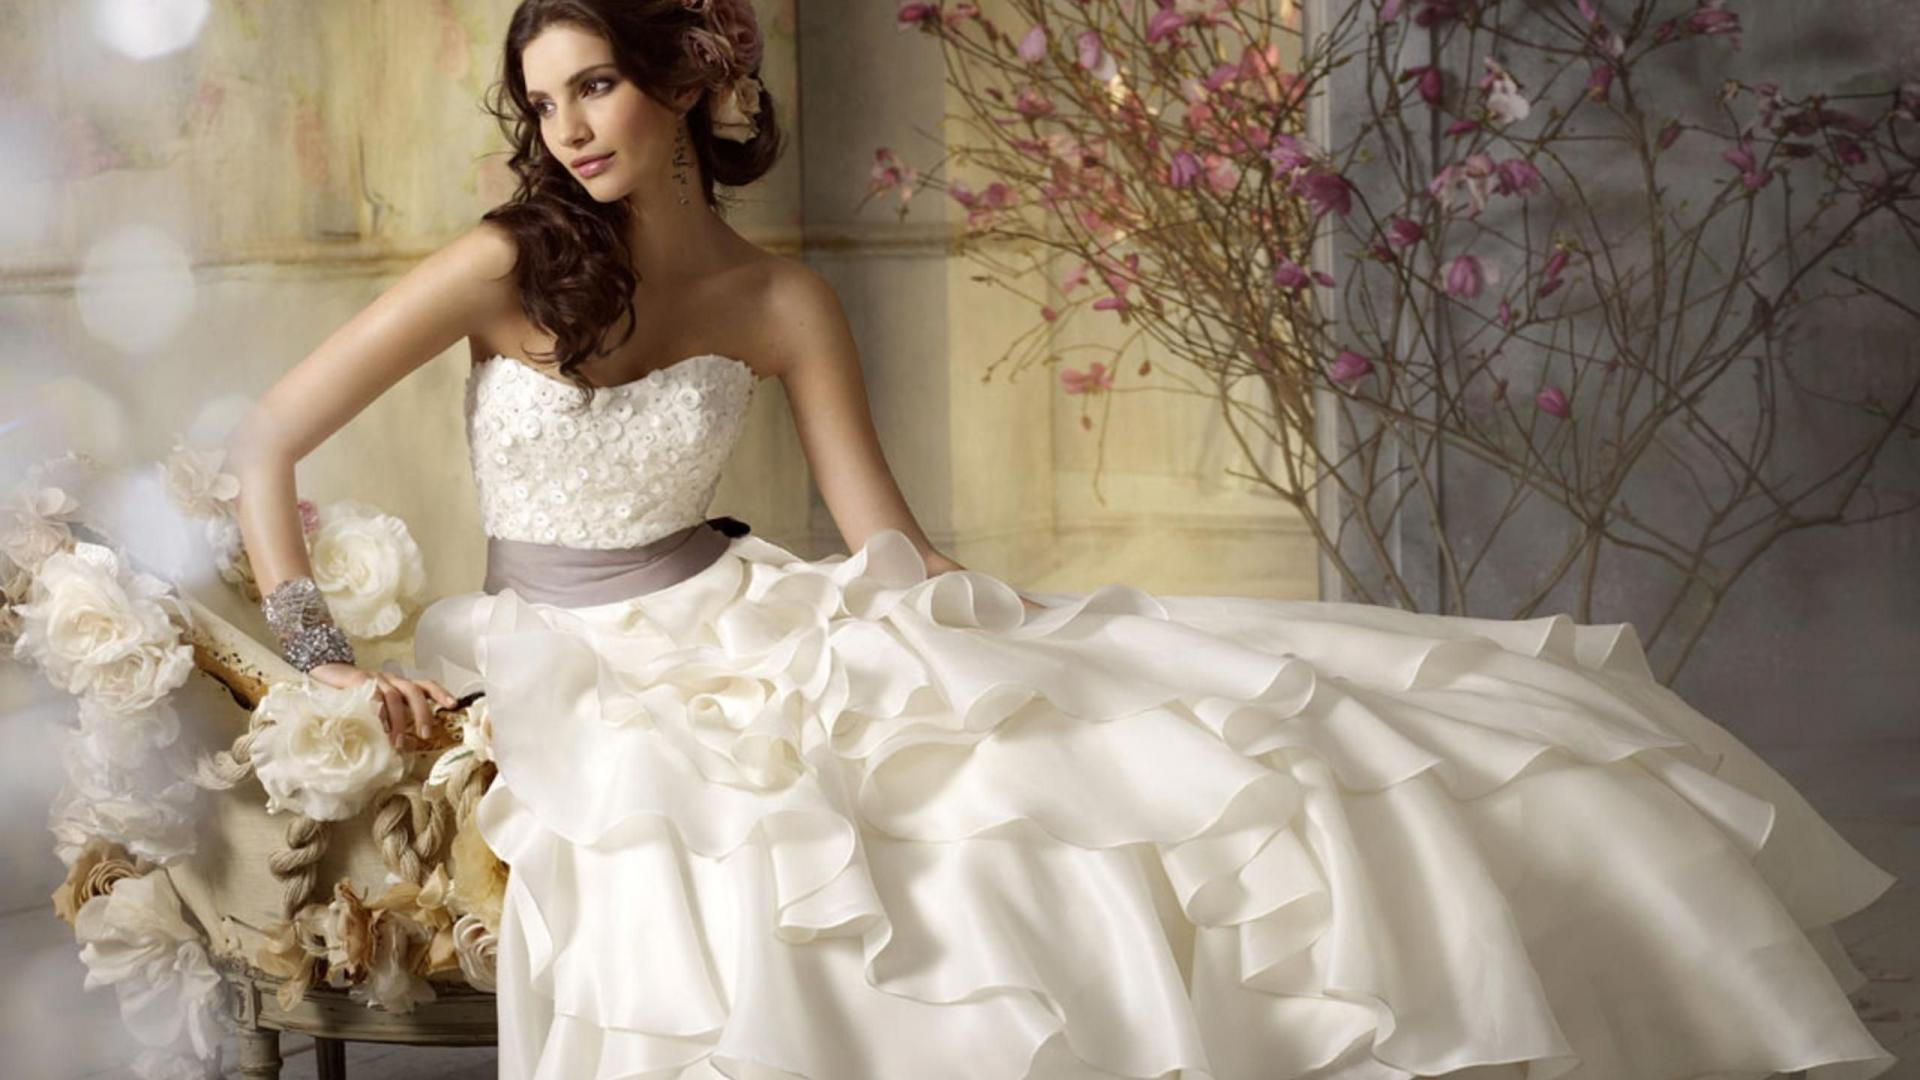 Wedding dress | Prom Dress and All Kinds of Beautiful Skirt